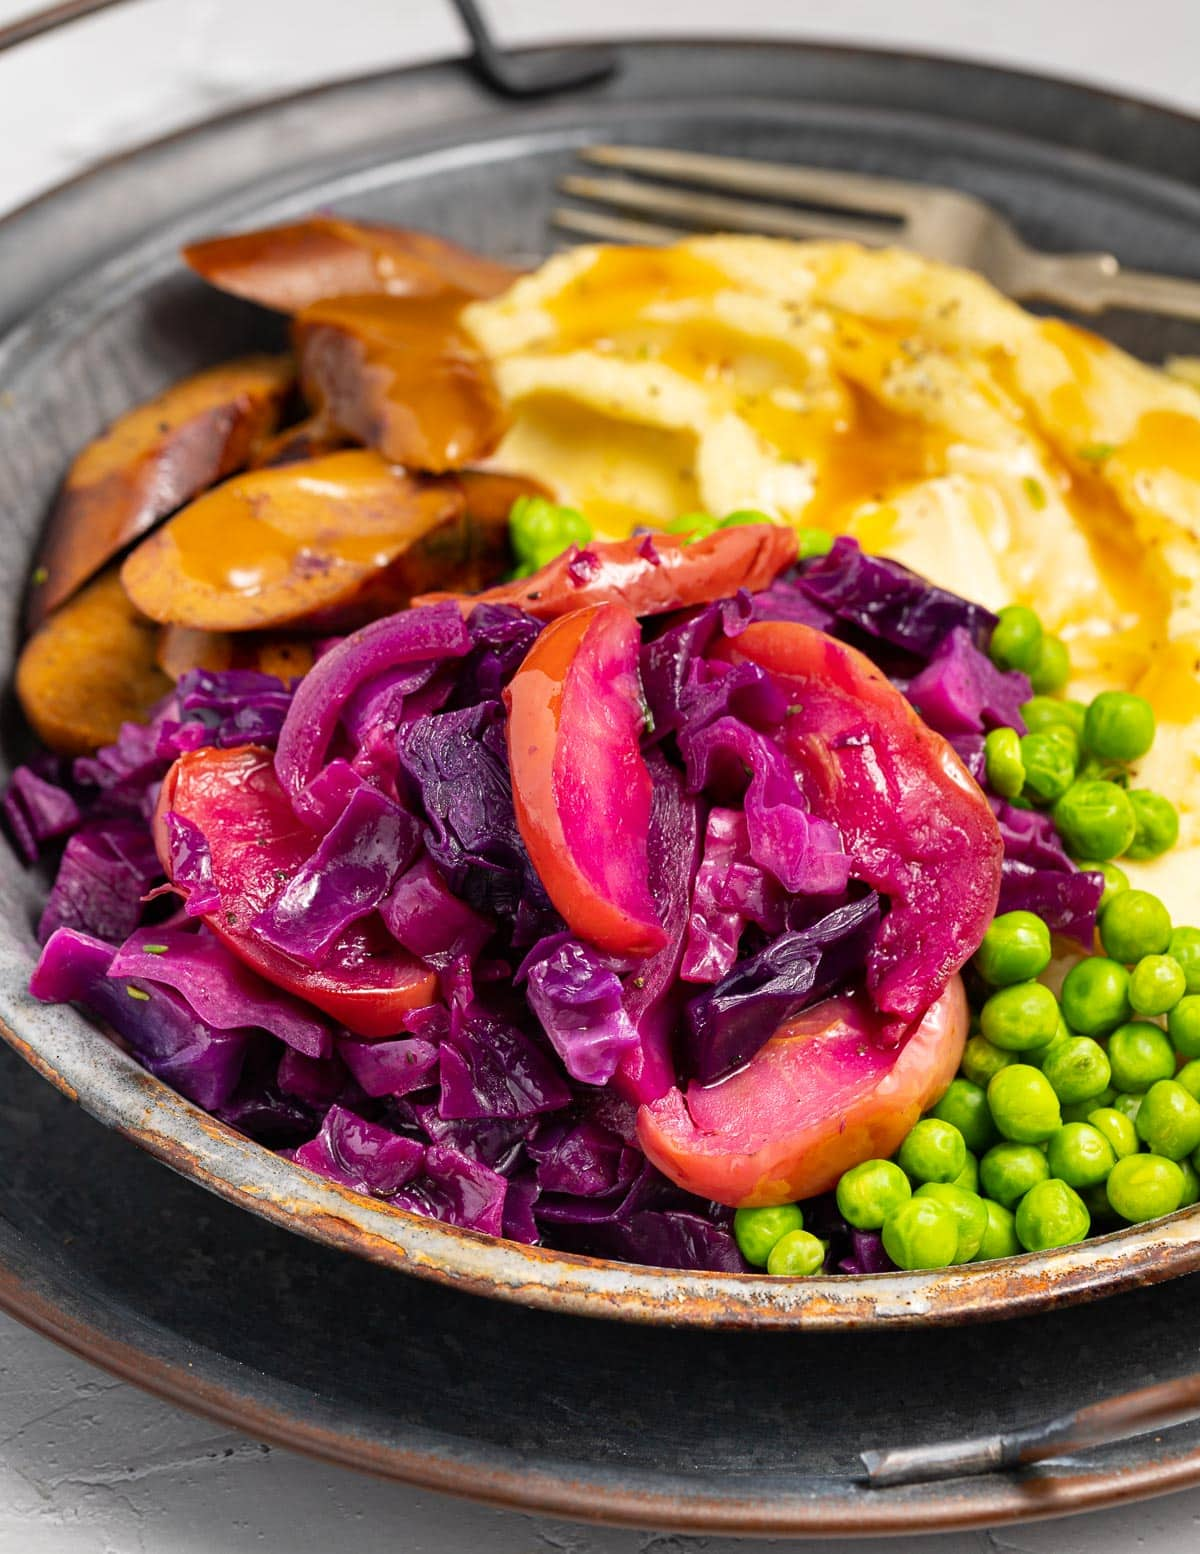 roasted red cabbage and apples with sausage and mashed potato